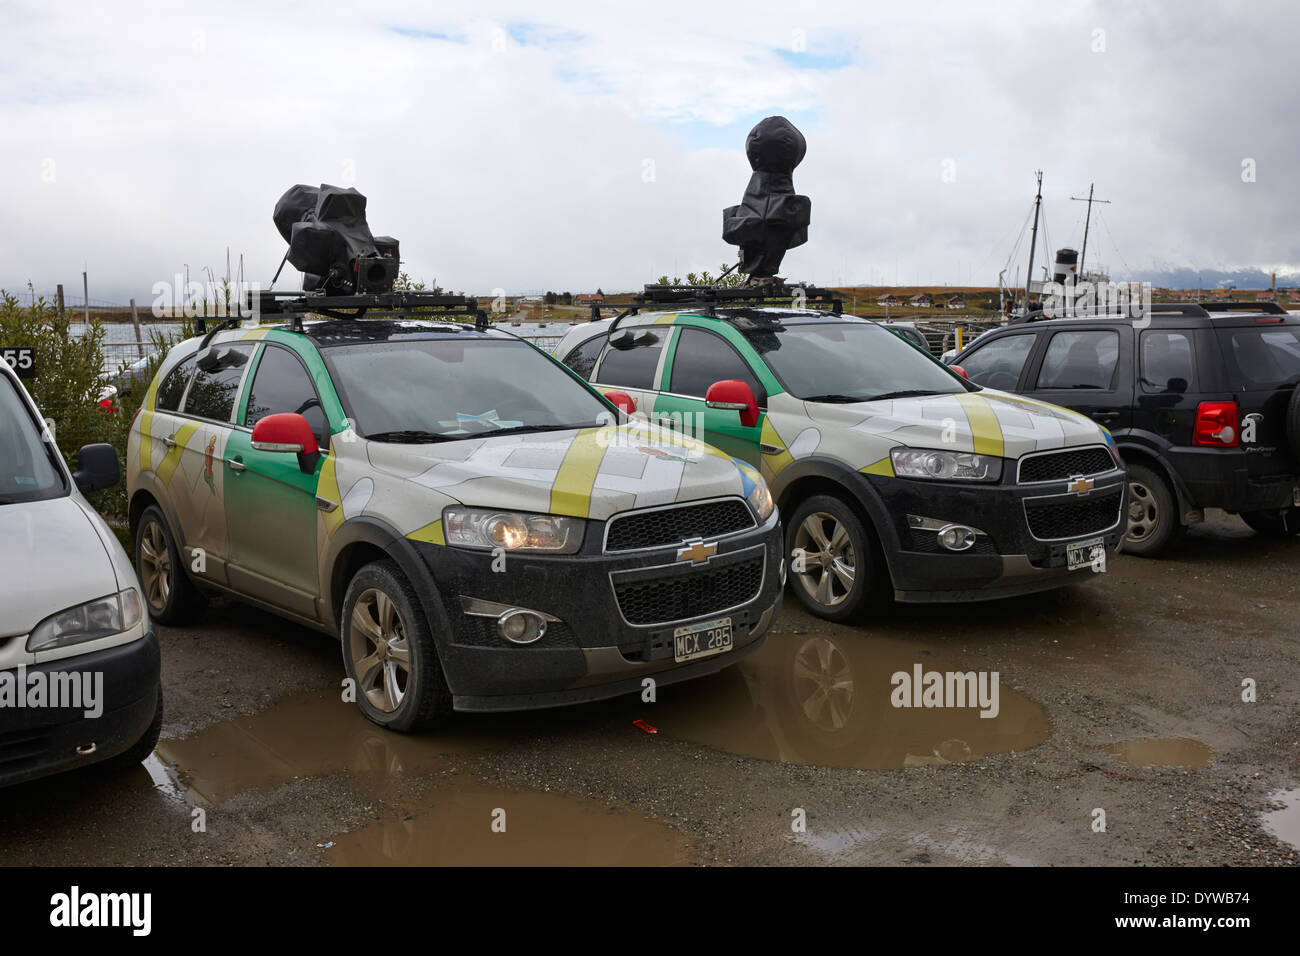 google street view cars parked in ushuaia argentina - Stock Image